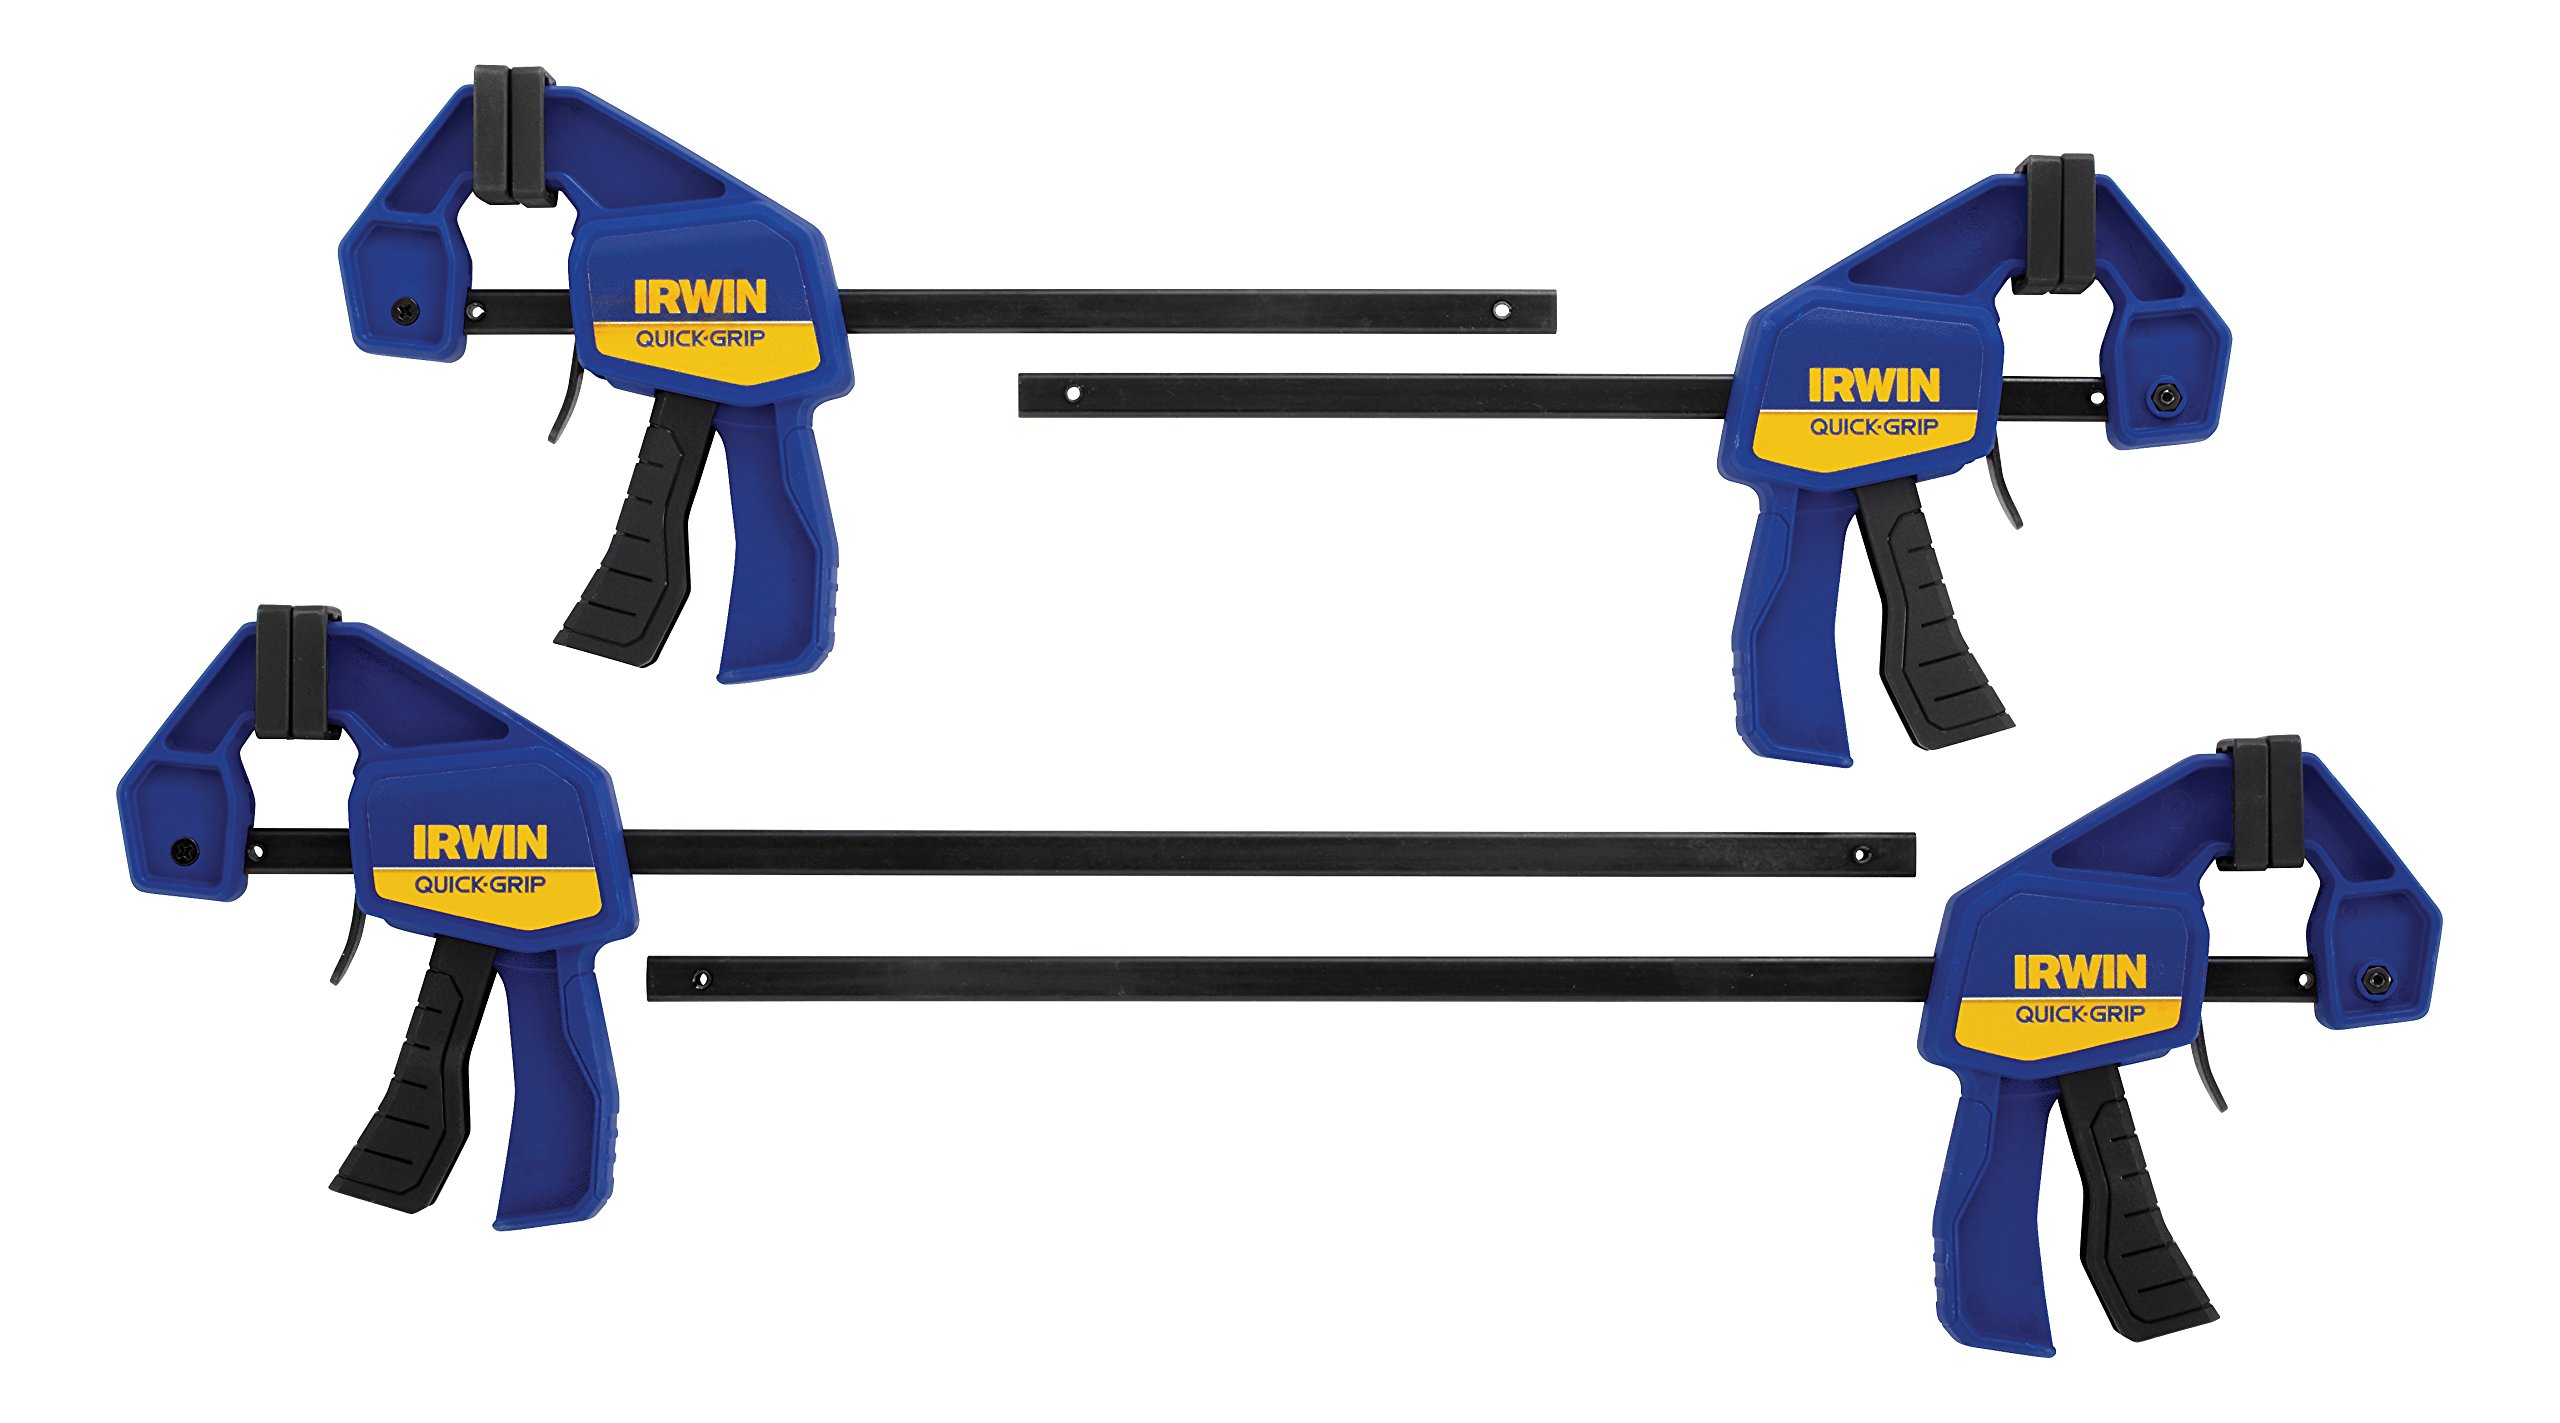 IRWINQUICK-GRIPOne-Handed Mini Bar Clamp 4 Pack, (2) 6'', (2) 12'', 1964748